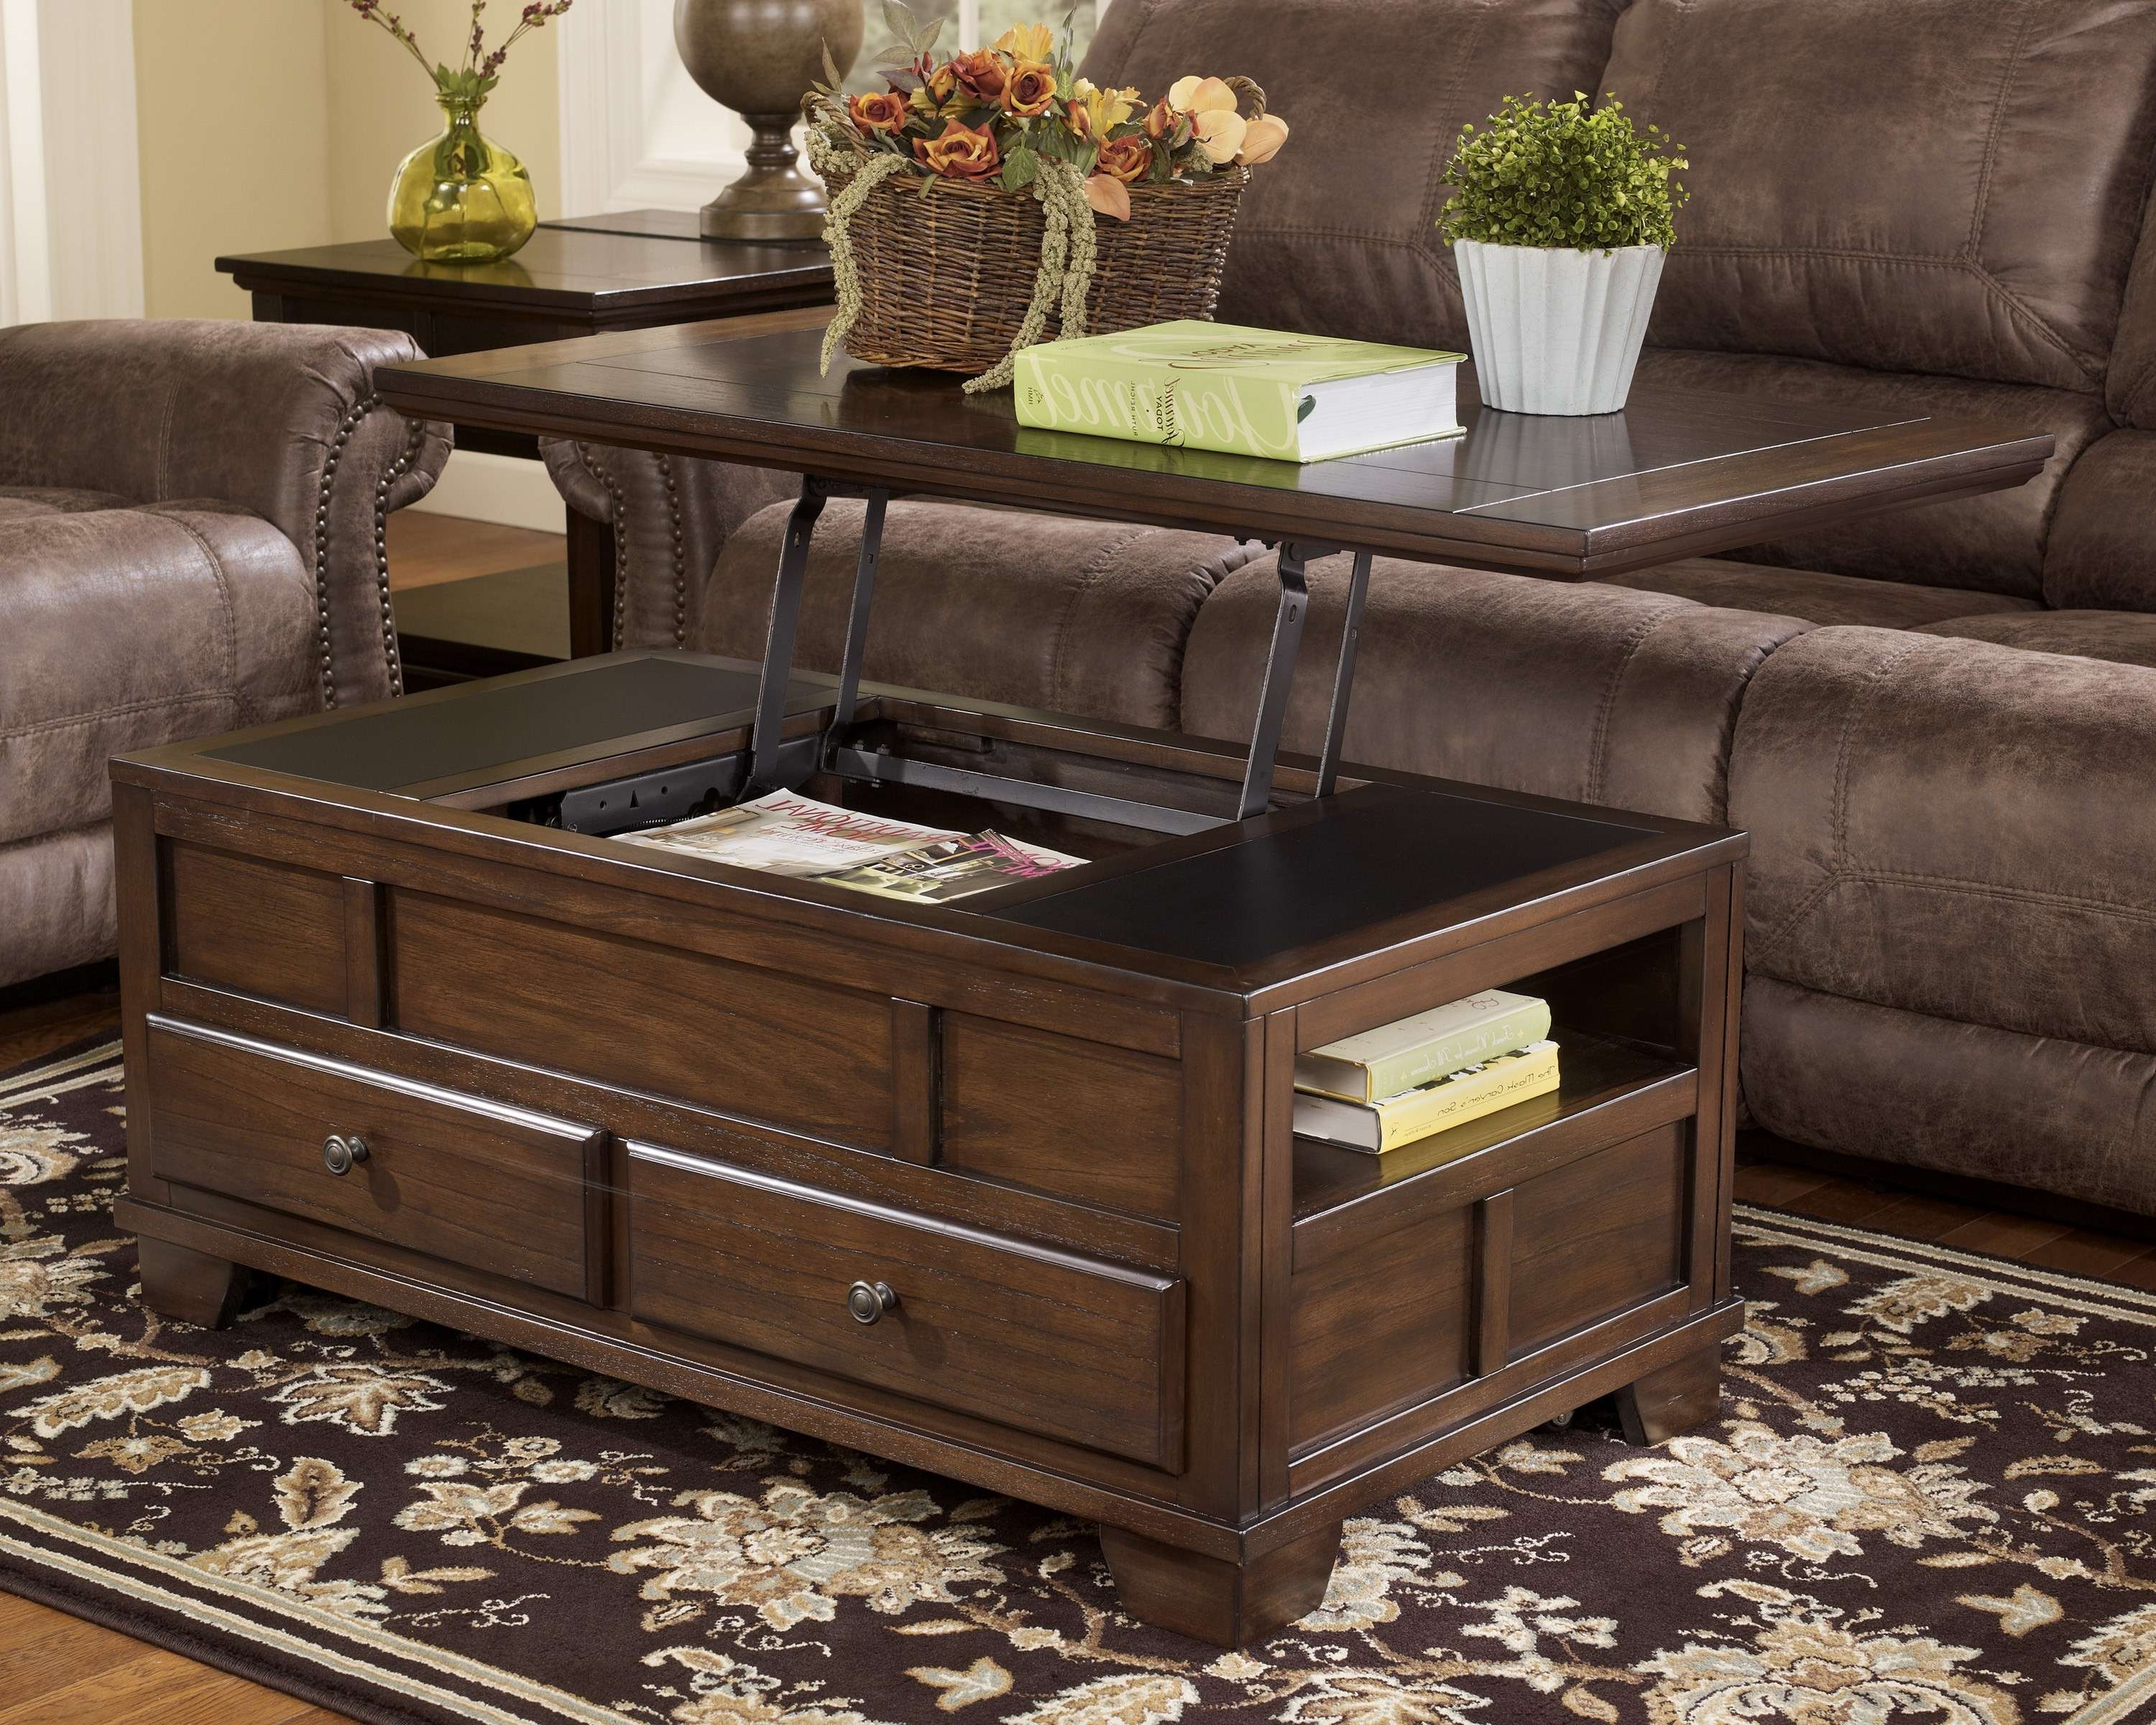 Fashionable Dark Brown Coffee Tables For Coffee Tables : For Sale Small Dark Coffee Table Colorful Tables (View 11 of 20)